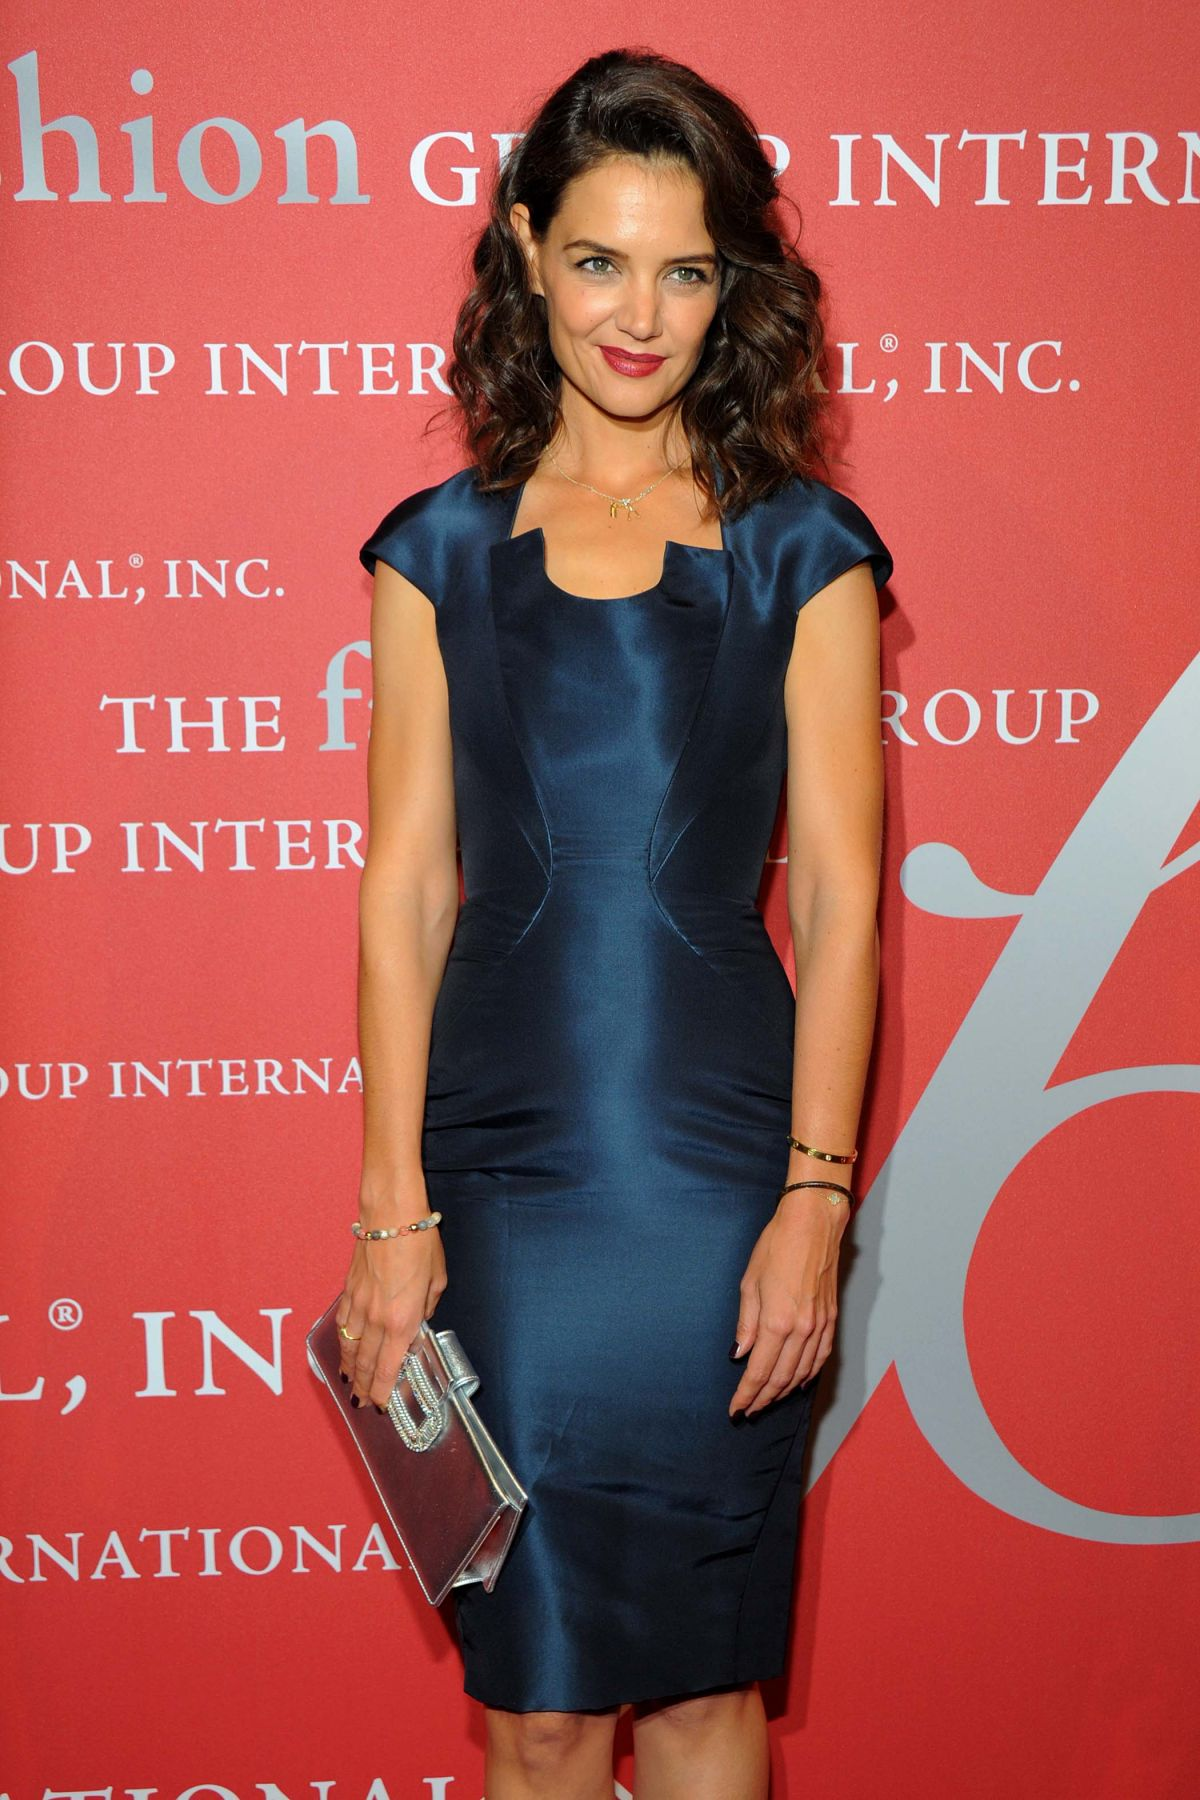 katie-holmes-at-2015-fashion-group-international-night-of-stars-gala-in-new-york-10-22-2015_1